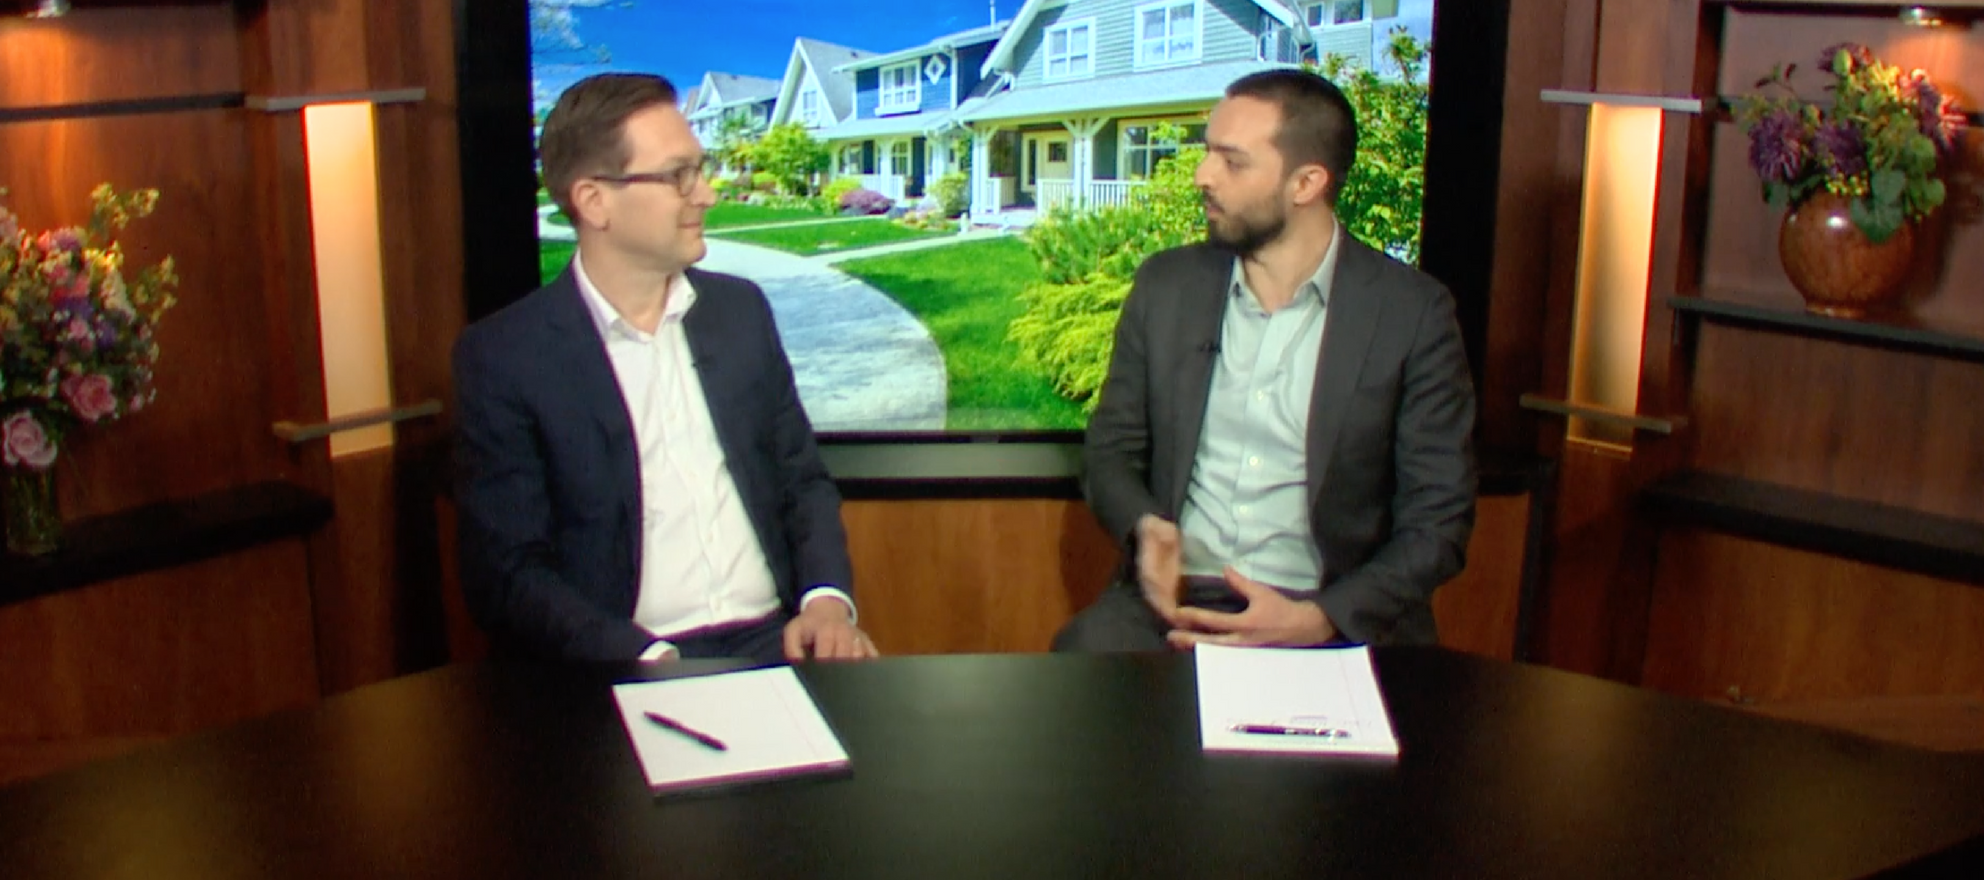 Exclusive interview: Why Zillow is becoming an iBuyer